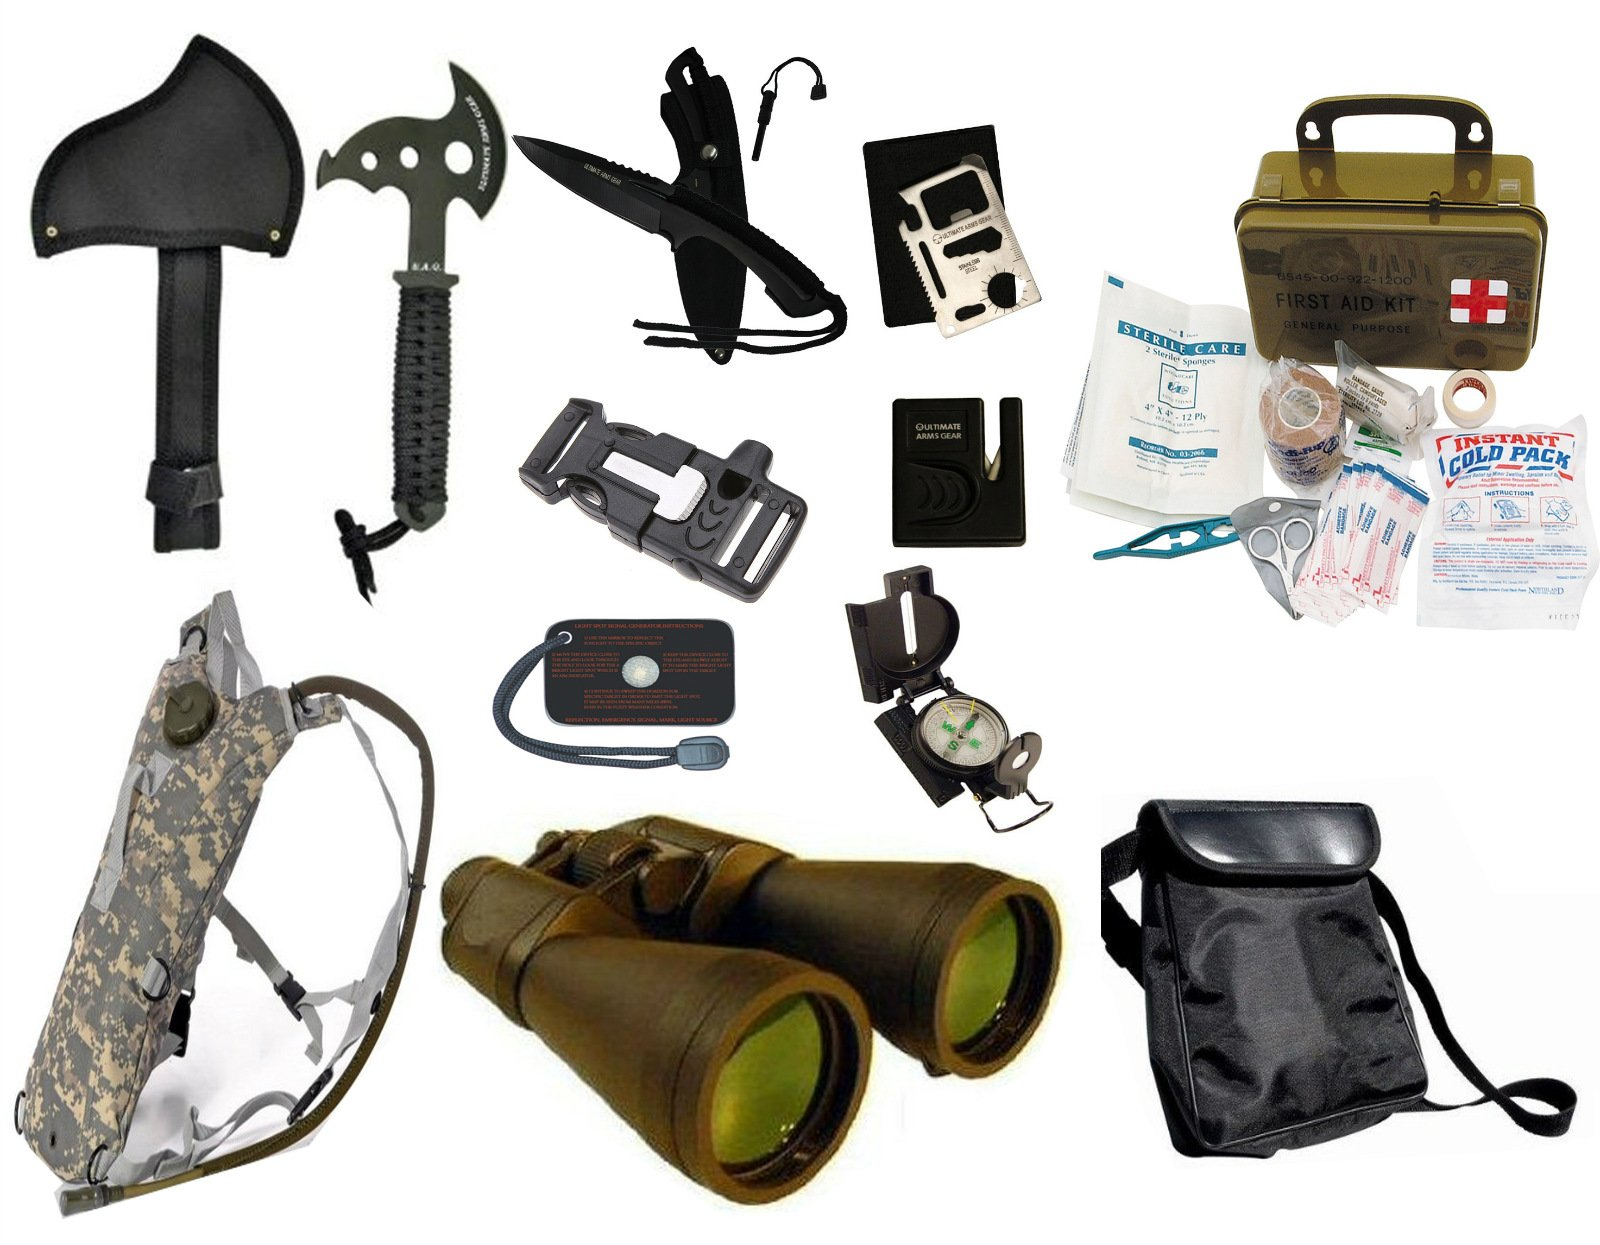 Survival Camping Hiking 20X70 Binoculars Green,Emergency First Aid Kit, Sharpener, Axe, Fire Blade, Whistle Flint Striker Belt Buckle, ACU Hydration Backpack, Multi Tool, Compass, Signal Mirror by Ultimate Arms Gear (Image #1)